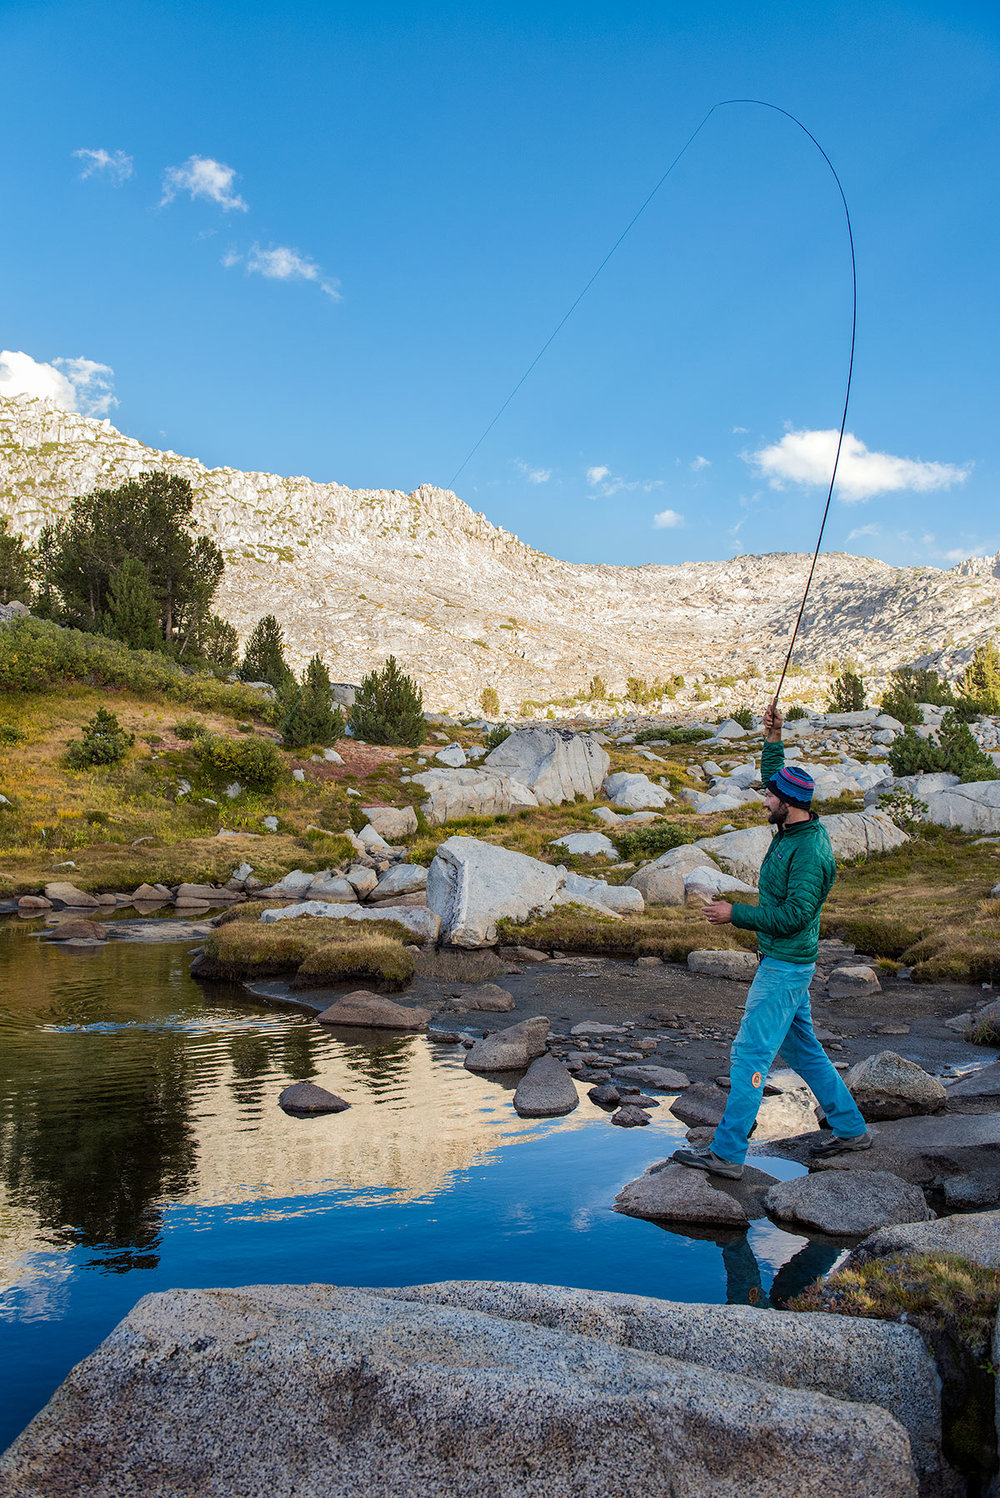 austin-trigg-patagonia-hiking-john-muir-trail-wilderness-california-adventure-outside-camp-sierra-nevada-lifestyle-fly-fishing-lake-marie.jpg